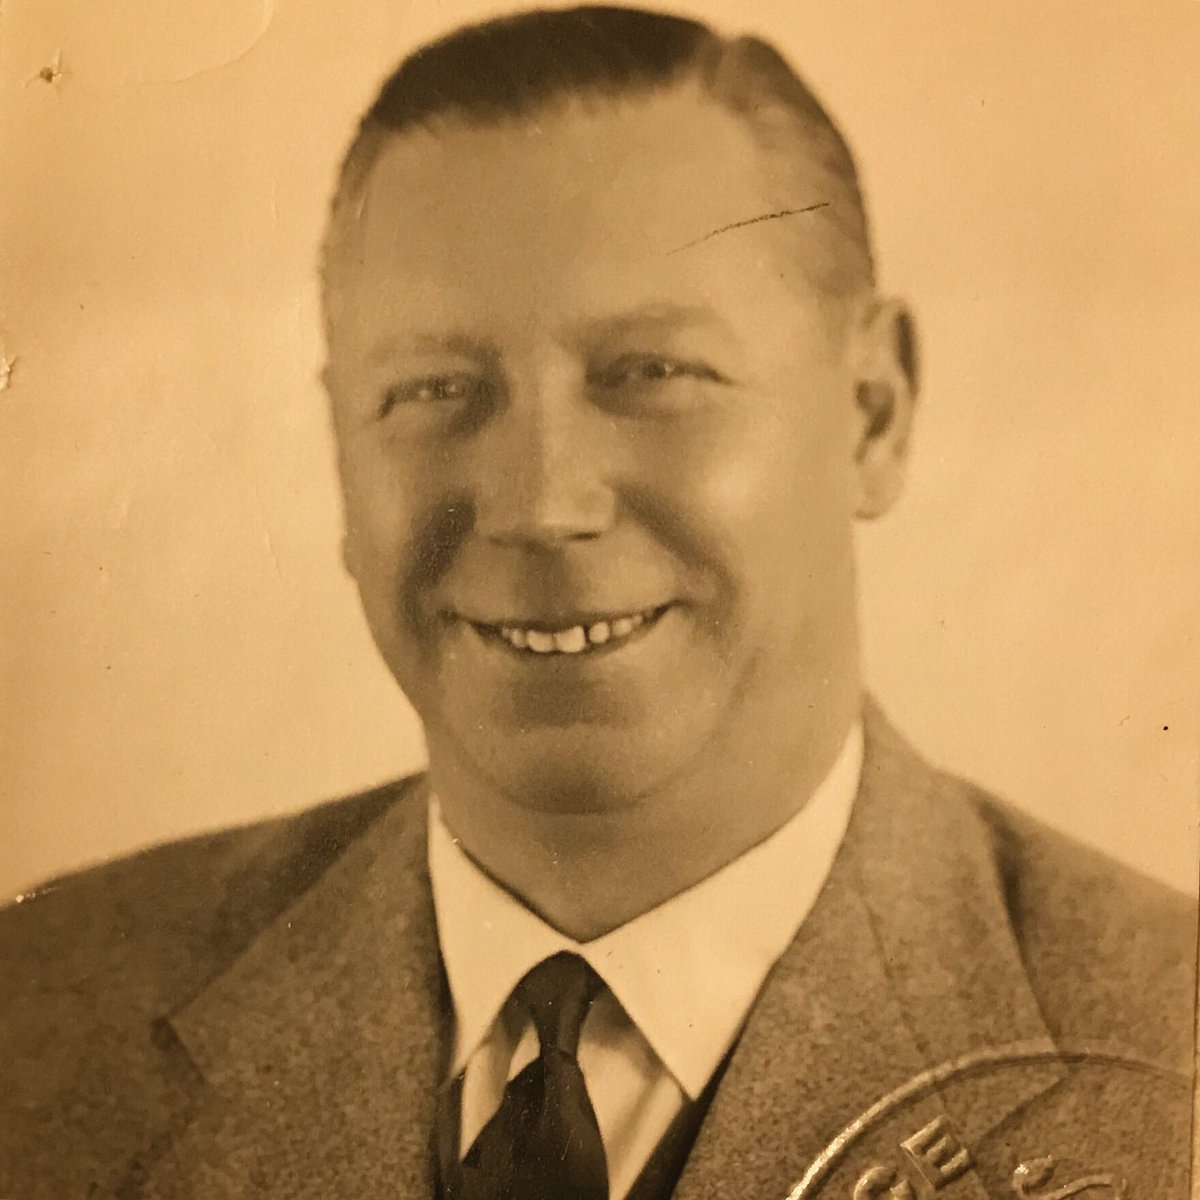 A friend of mine from the #GeorgeFormby Society asked for a piccy of GF's passport photo... I'm always glad of an excuse to rummage through my collection of goodies!  #ukulele #banjolele #legend<br>http://pic.twitter.com/QEPhggSHwI